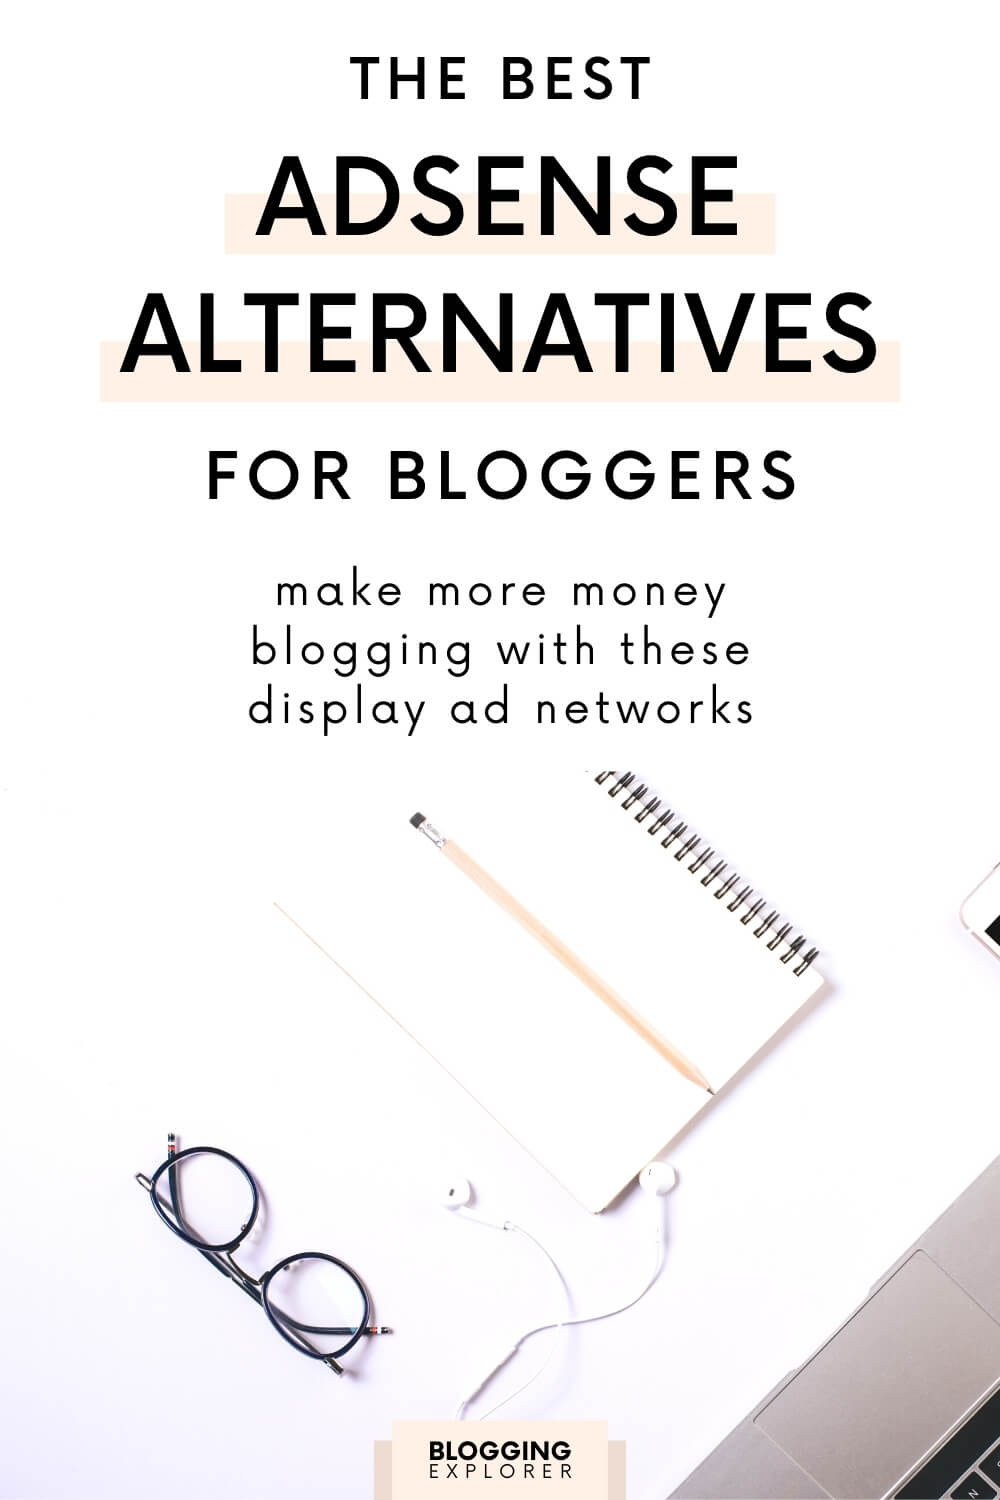 The best AdSense alternatives for bloggers - Blogging Explorer